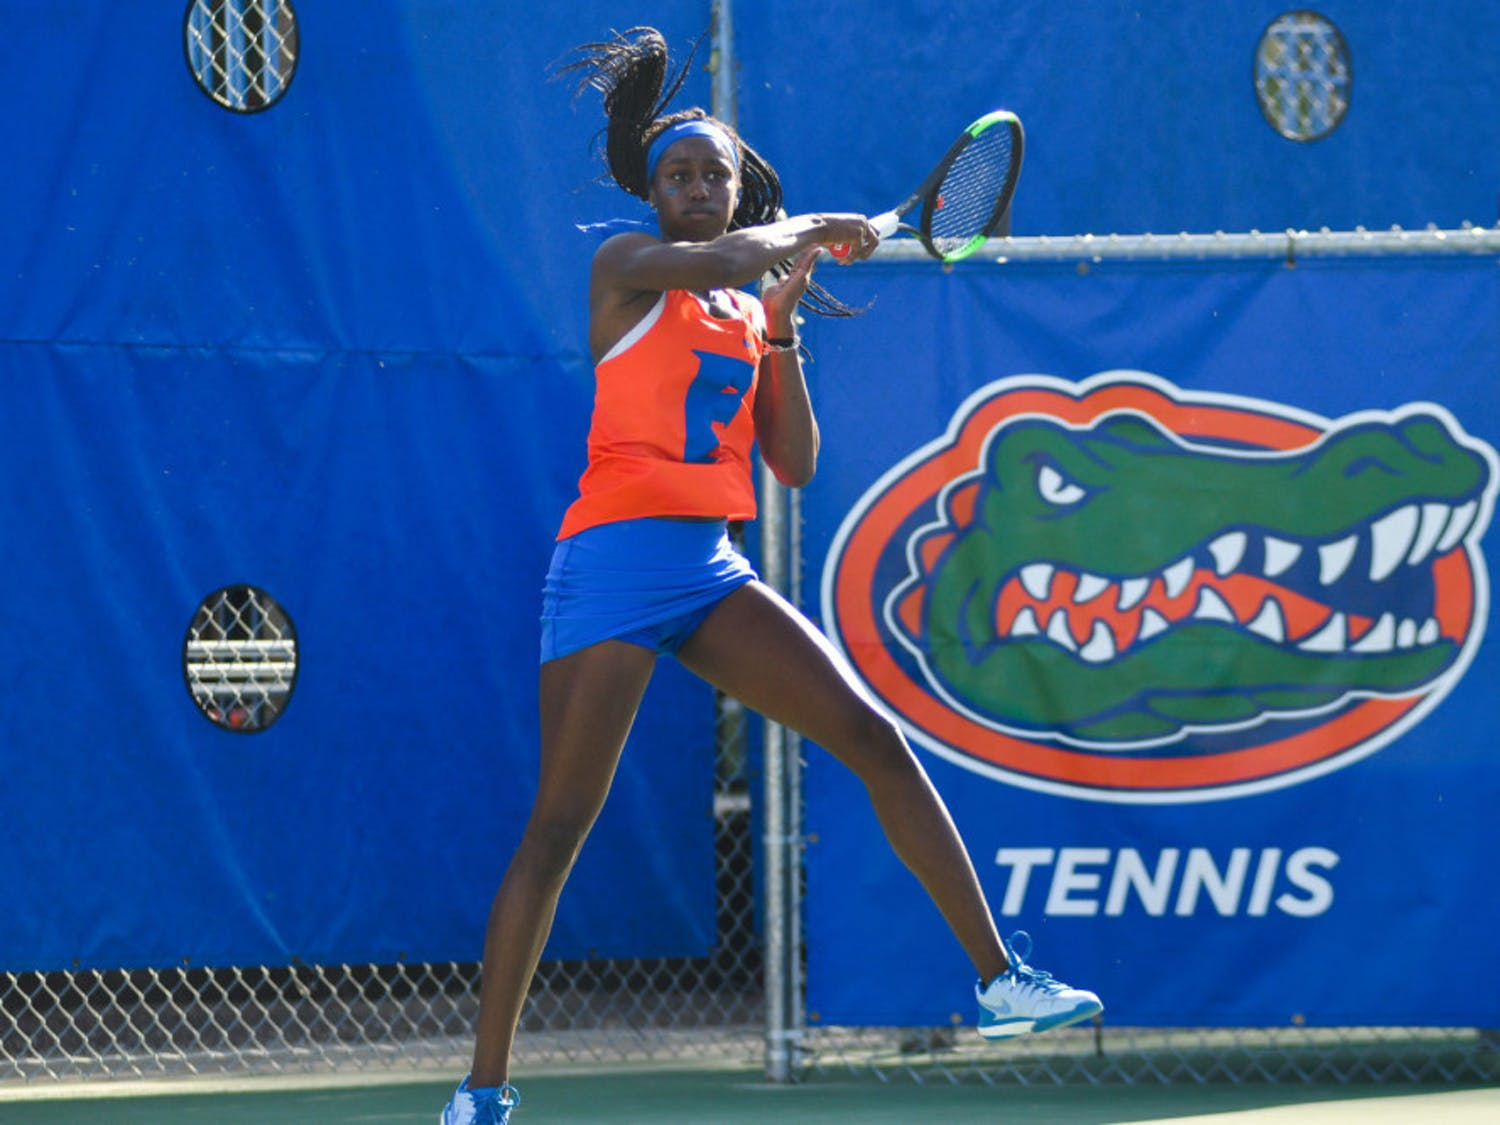 Junior Marlee Zein hits a forehand return against Boson College in the 2019 NCAA Tournament. Zein ranks 85th among singles players